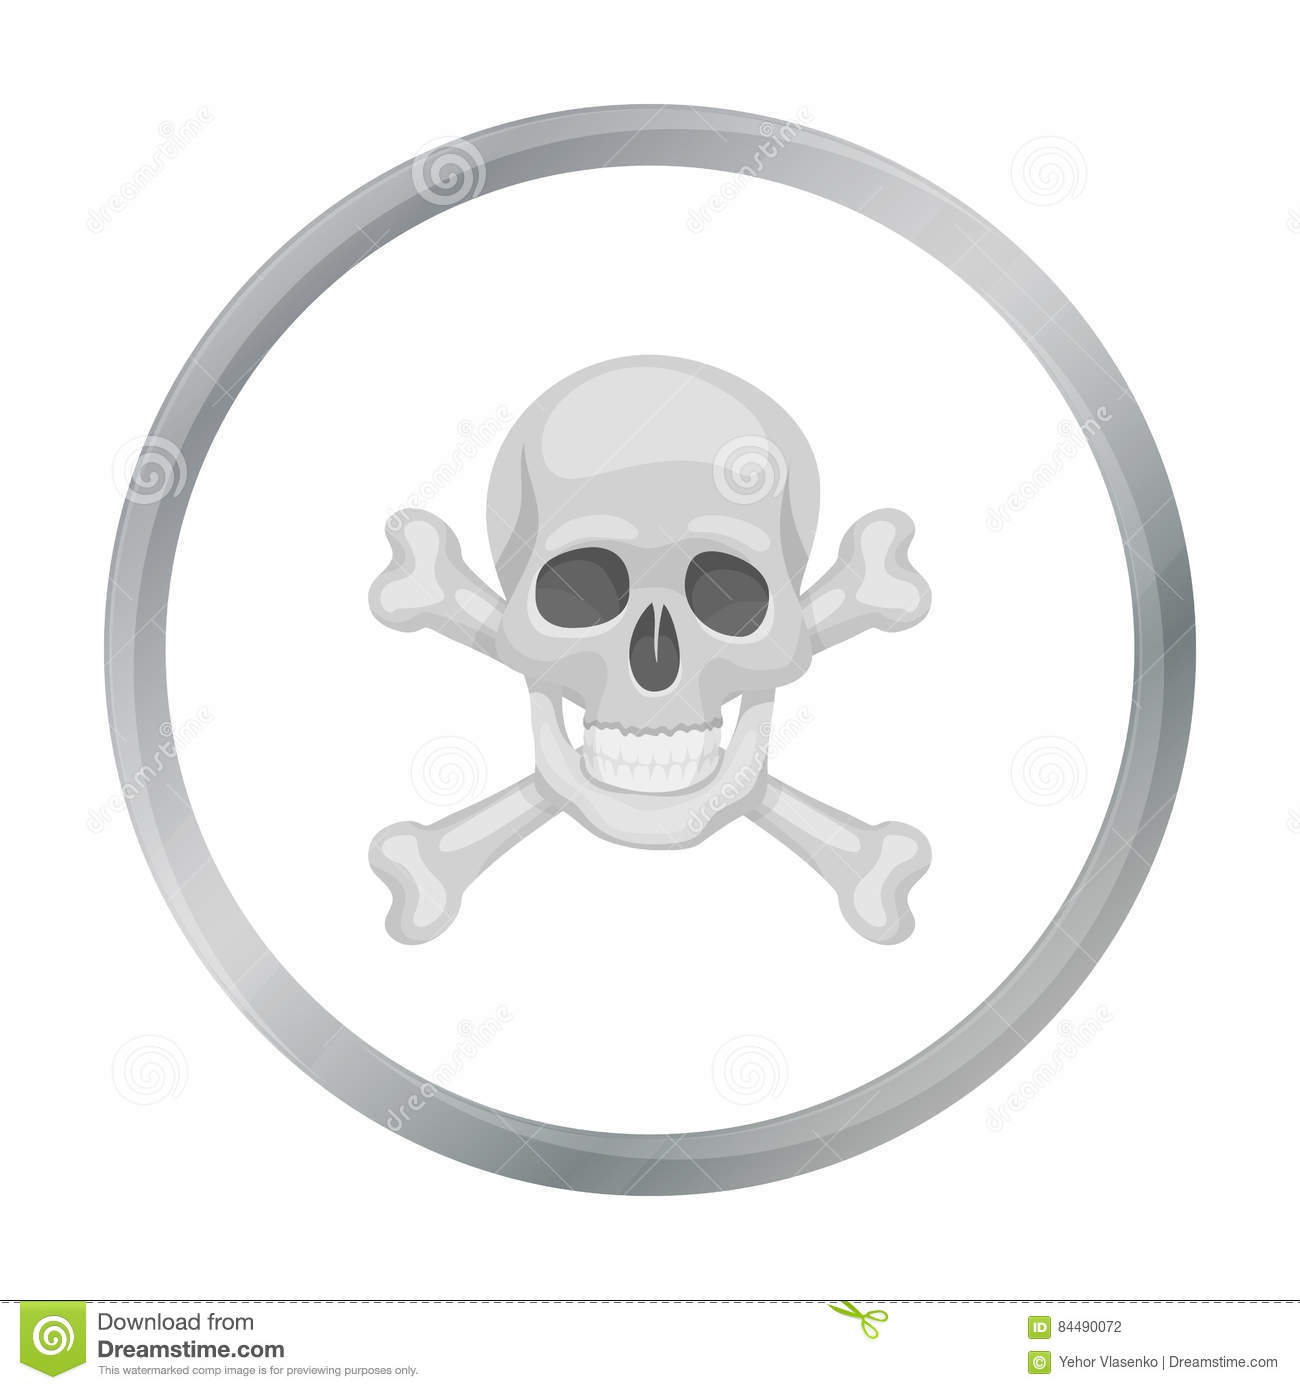 Cartoon Pirate Skull Symbol Stock Photography ...